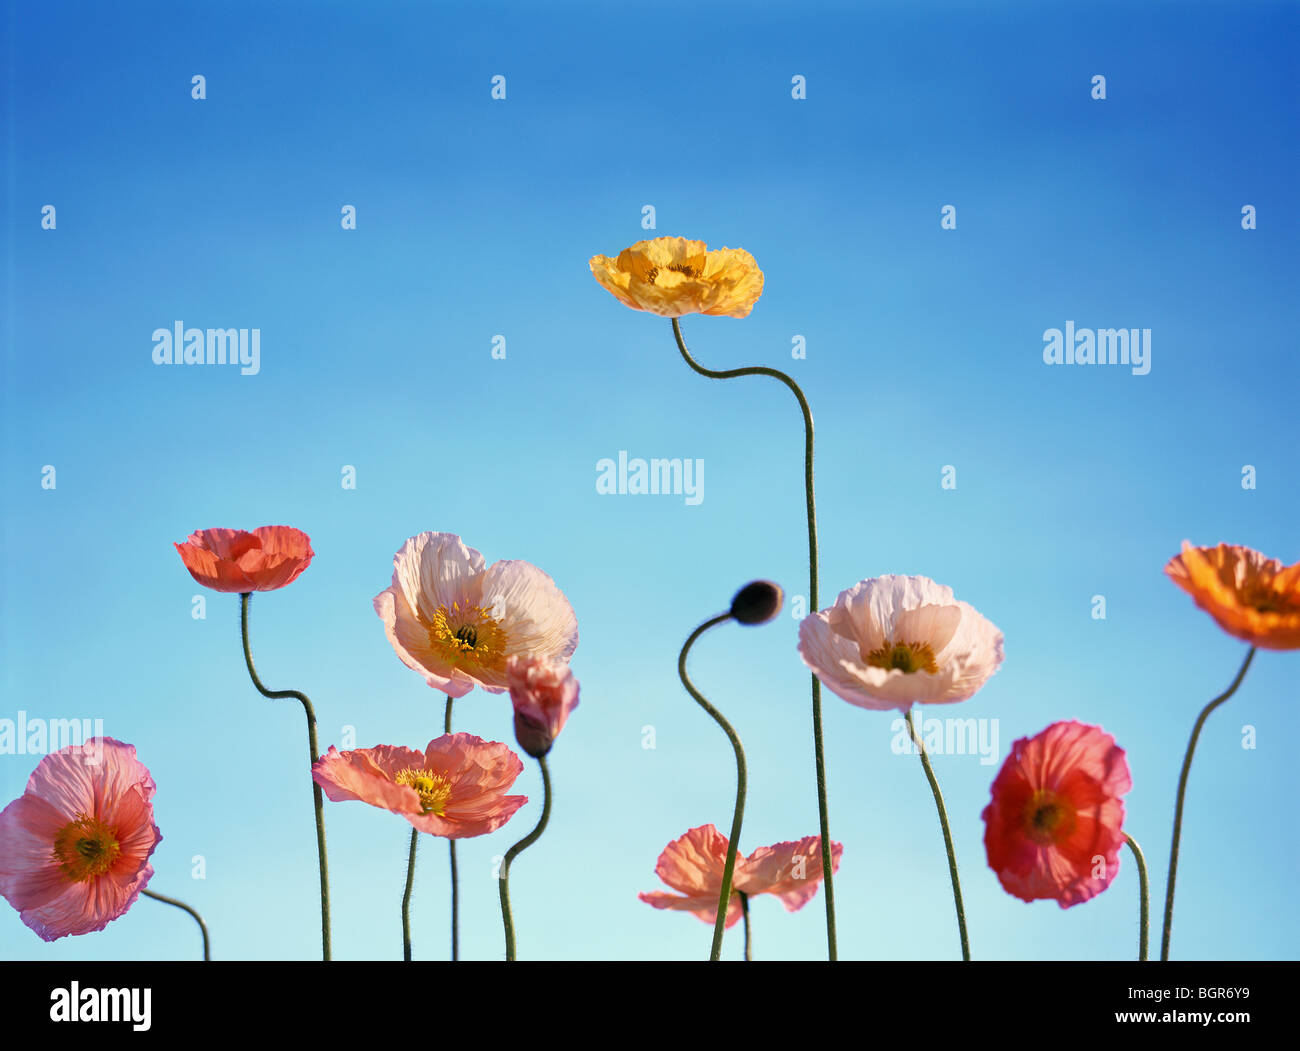 Tall poppies against blue sky - Stock Image